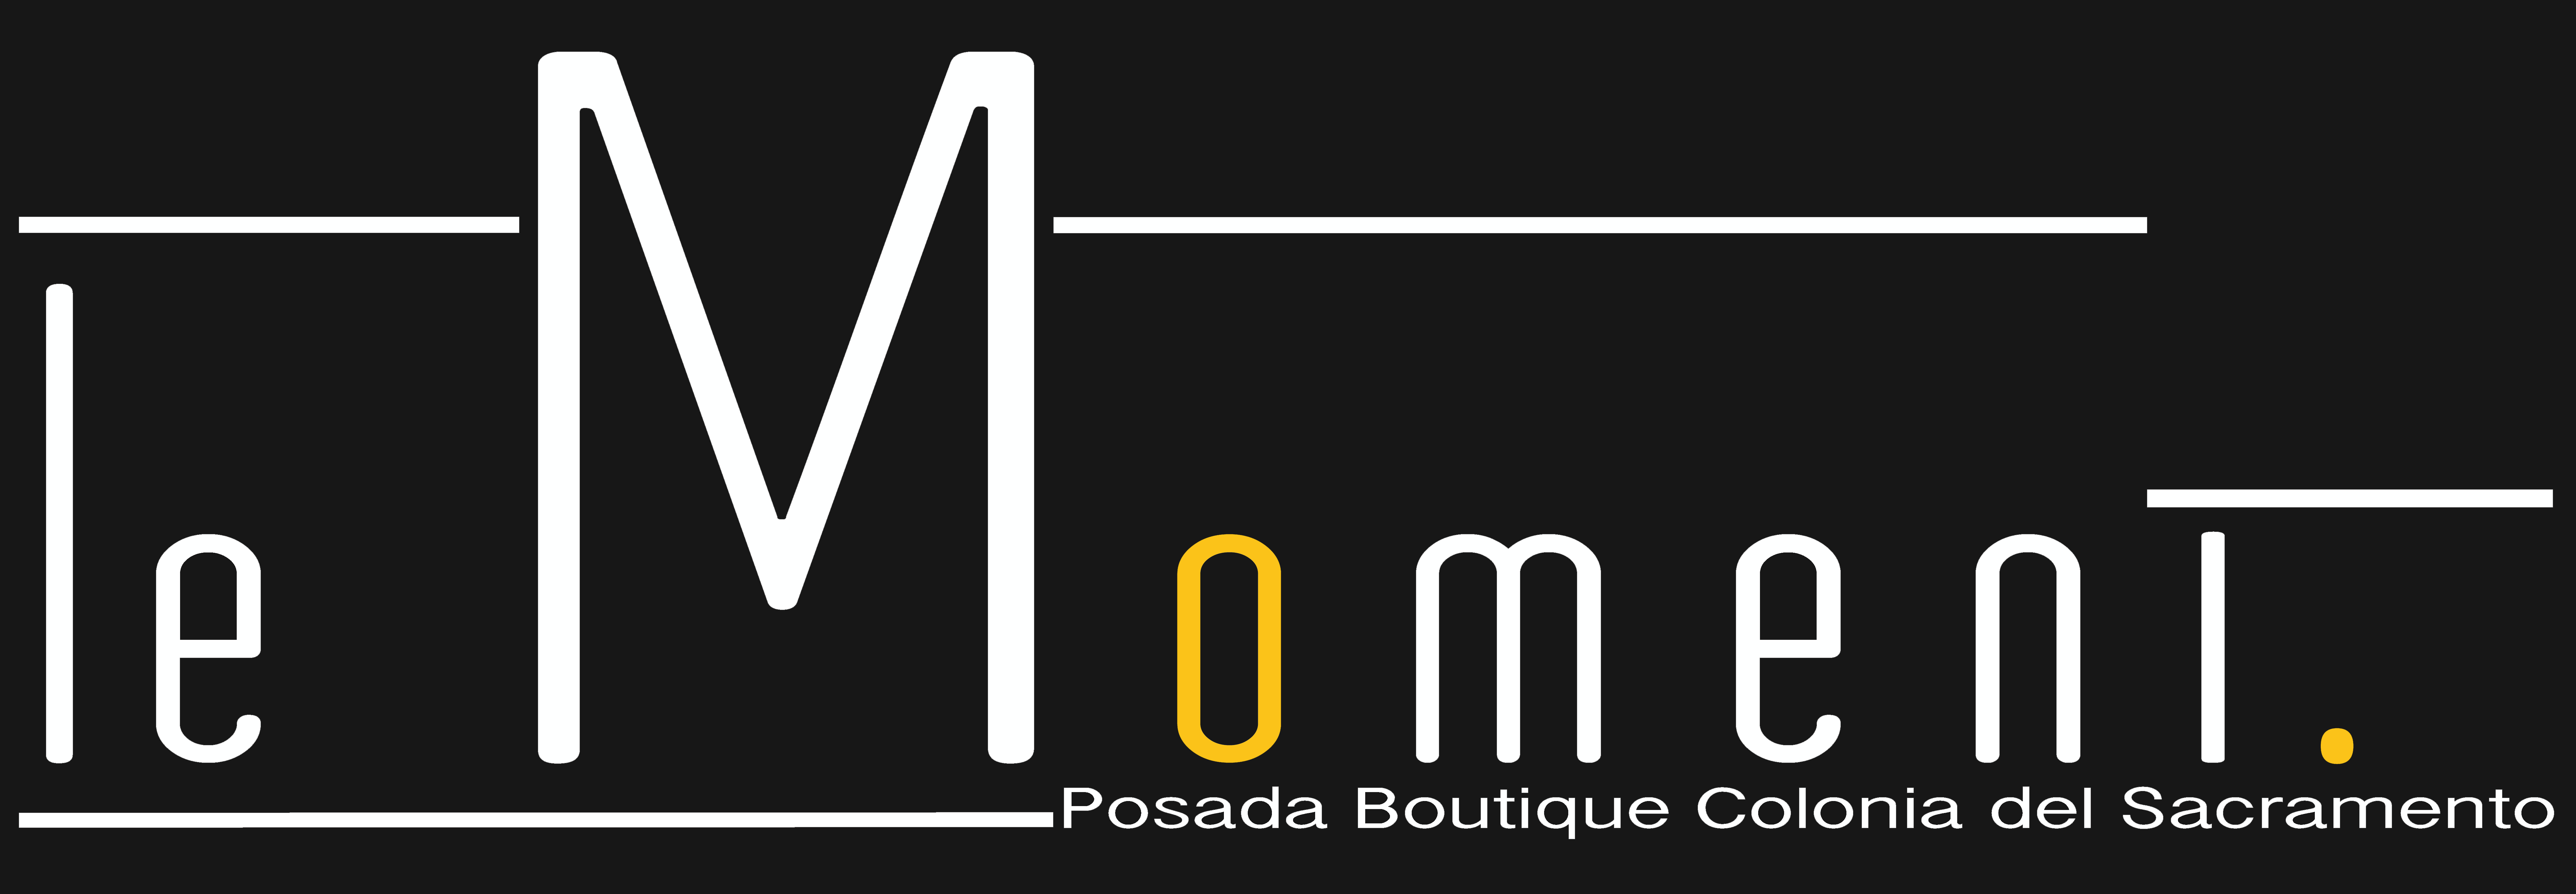 Le Moment Posada Boutique